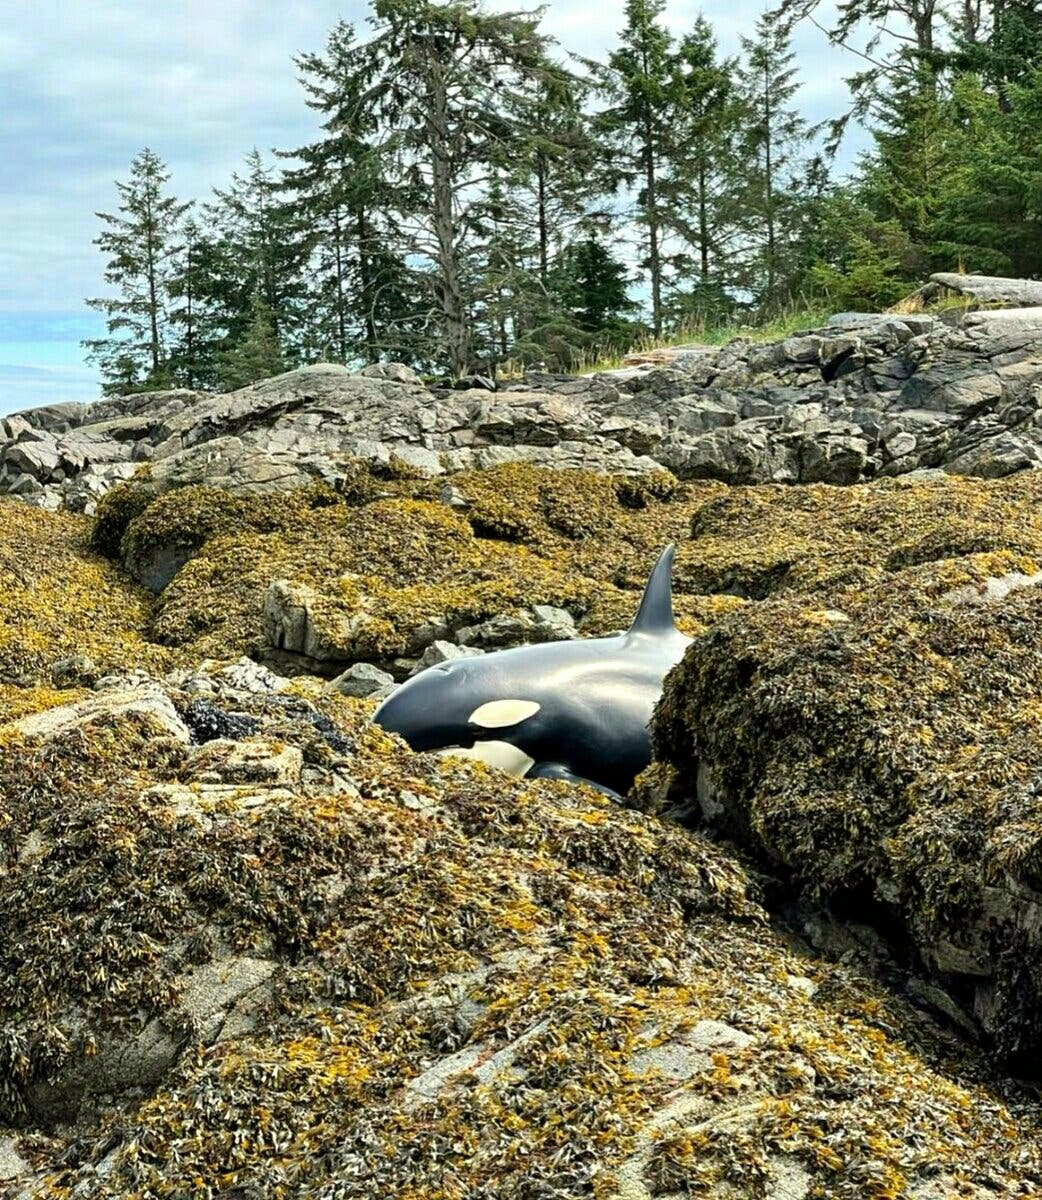 The orca that became stranded in Prince of Wales Island in Alaska on July 29 2021. (Twitter)